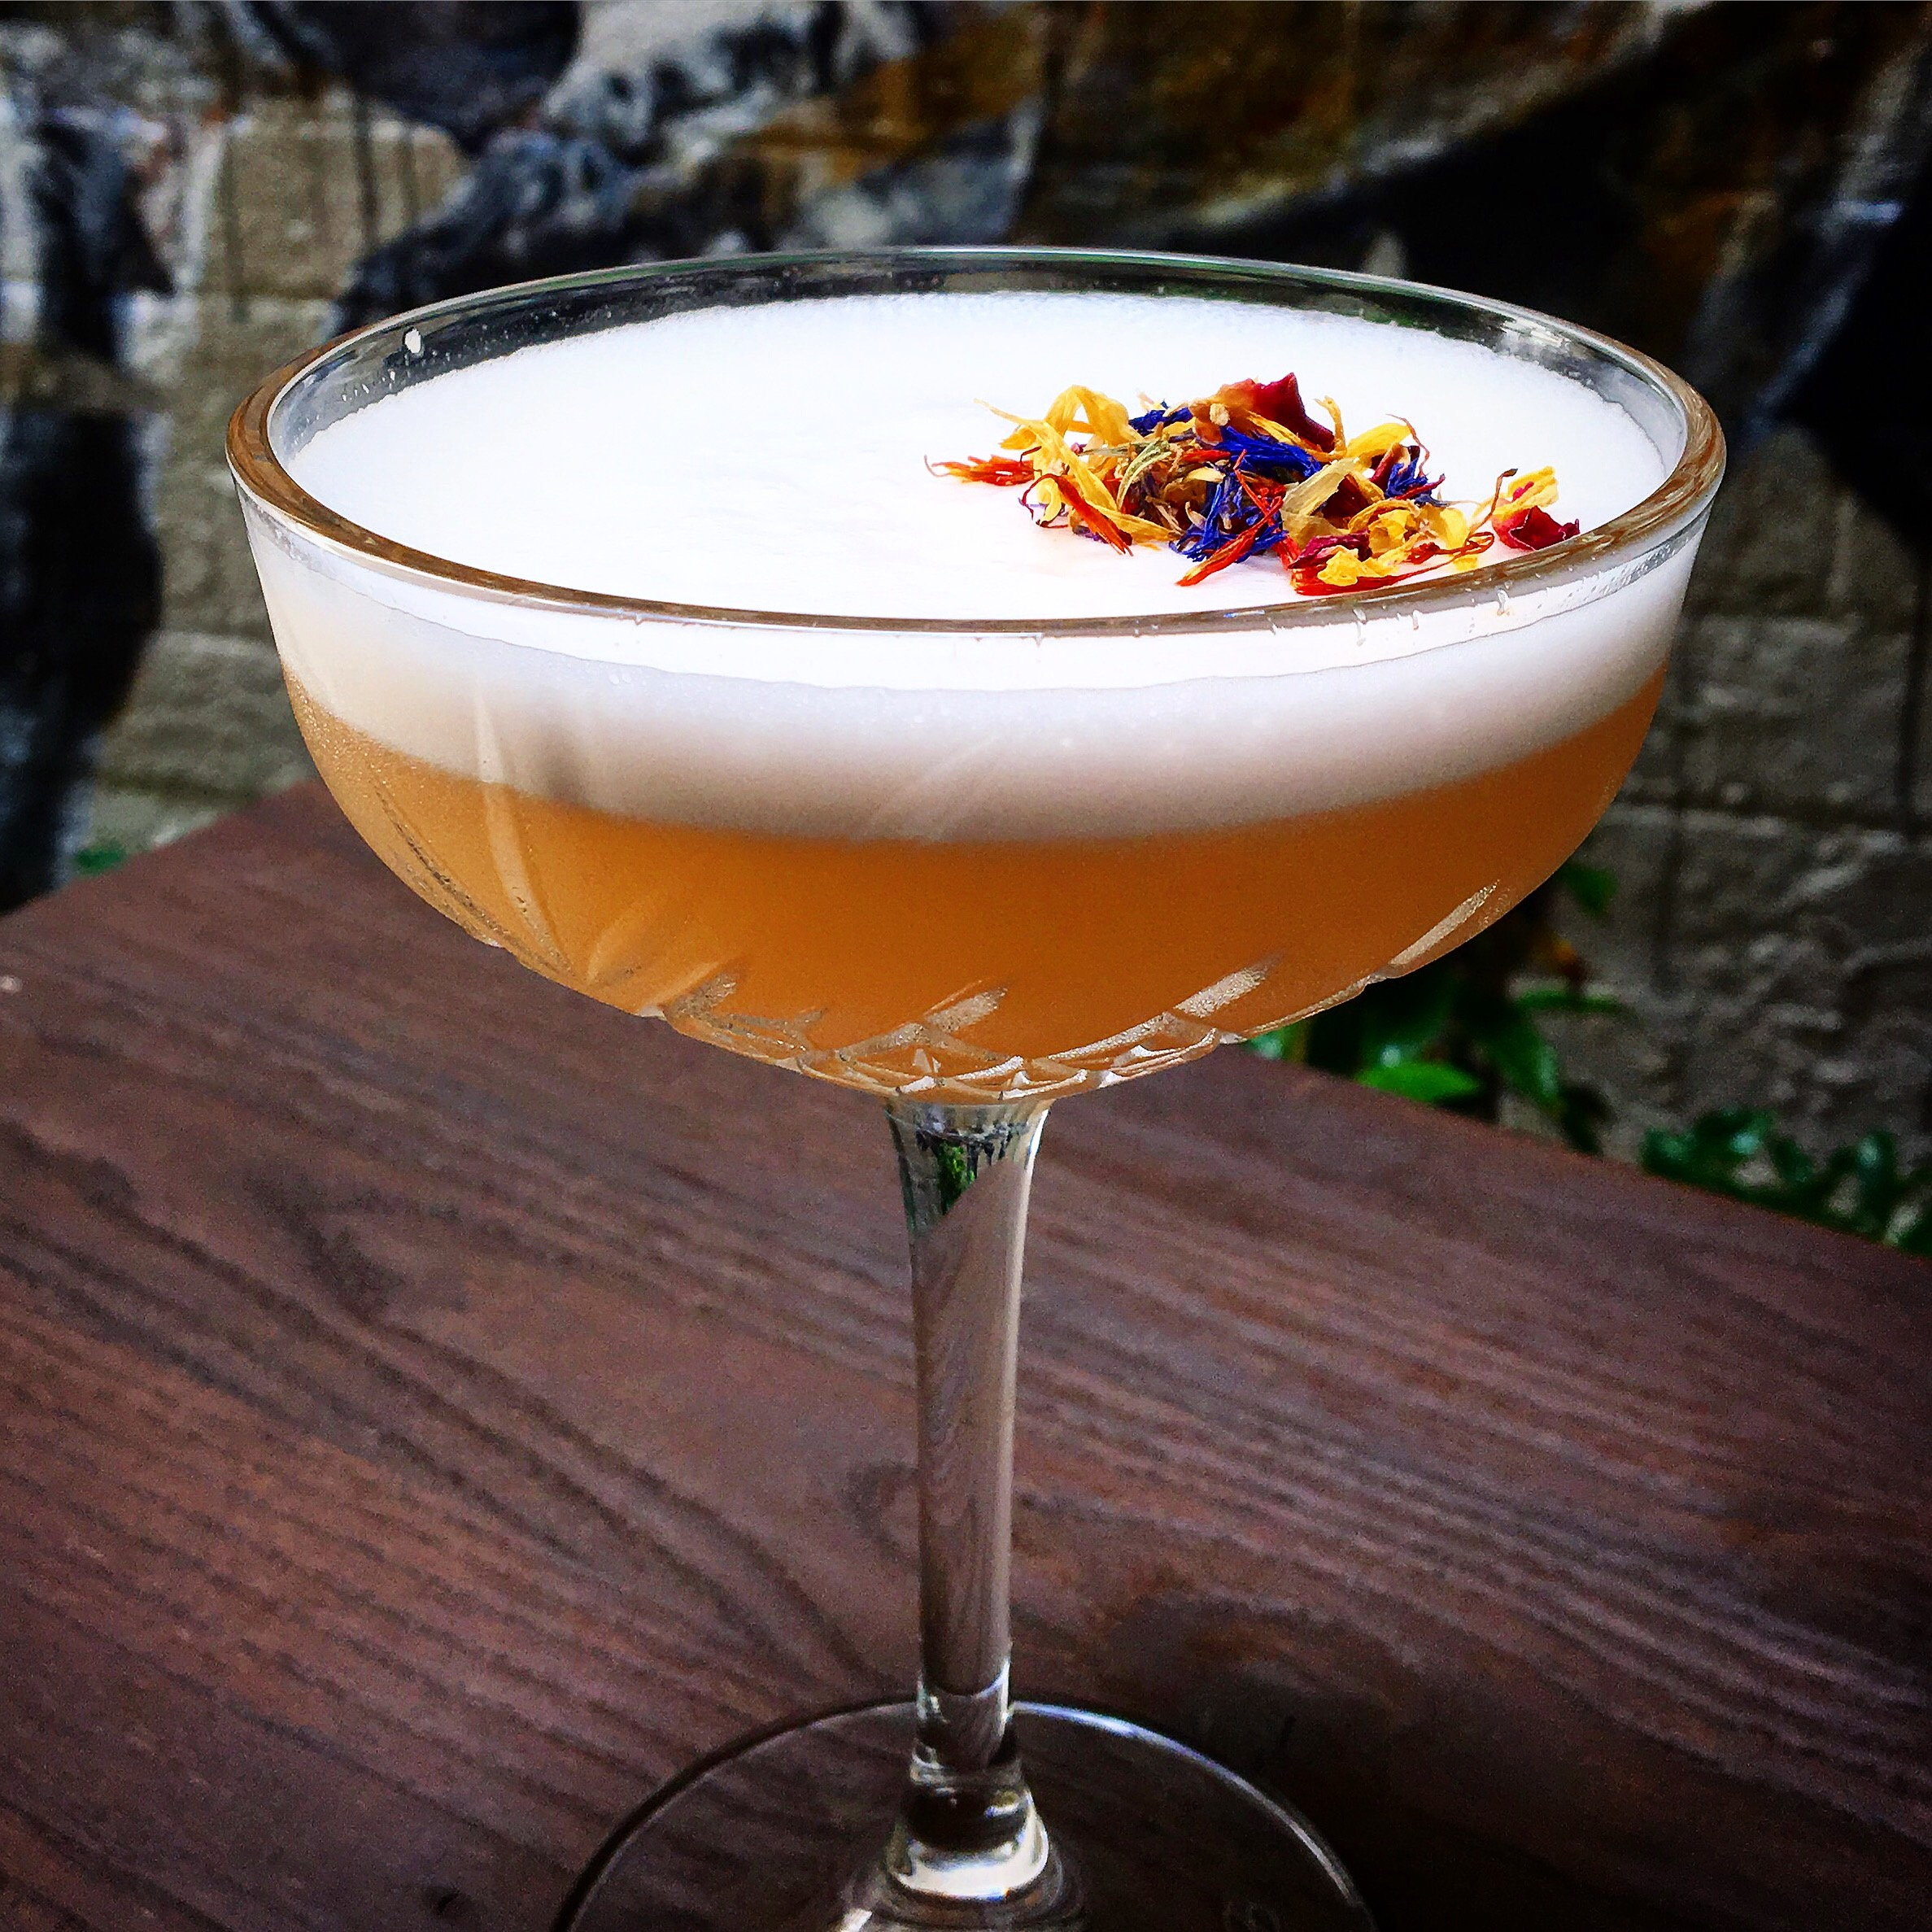 Musk Martini    Wyborowa Vodka, St Germain, Lychee Liqueur, pink grapefruit, lime, Agent 80 ginger syrup, egg white, dehydrated flowers